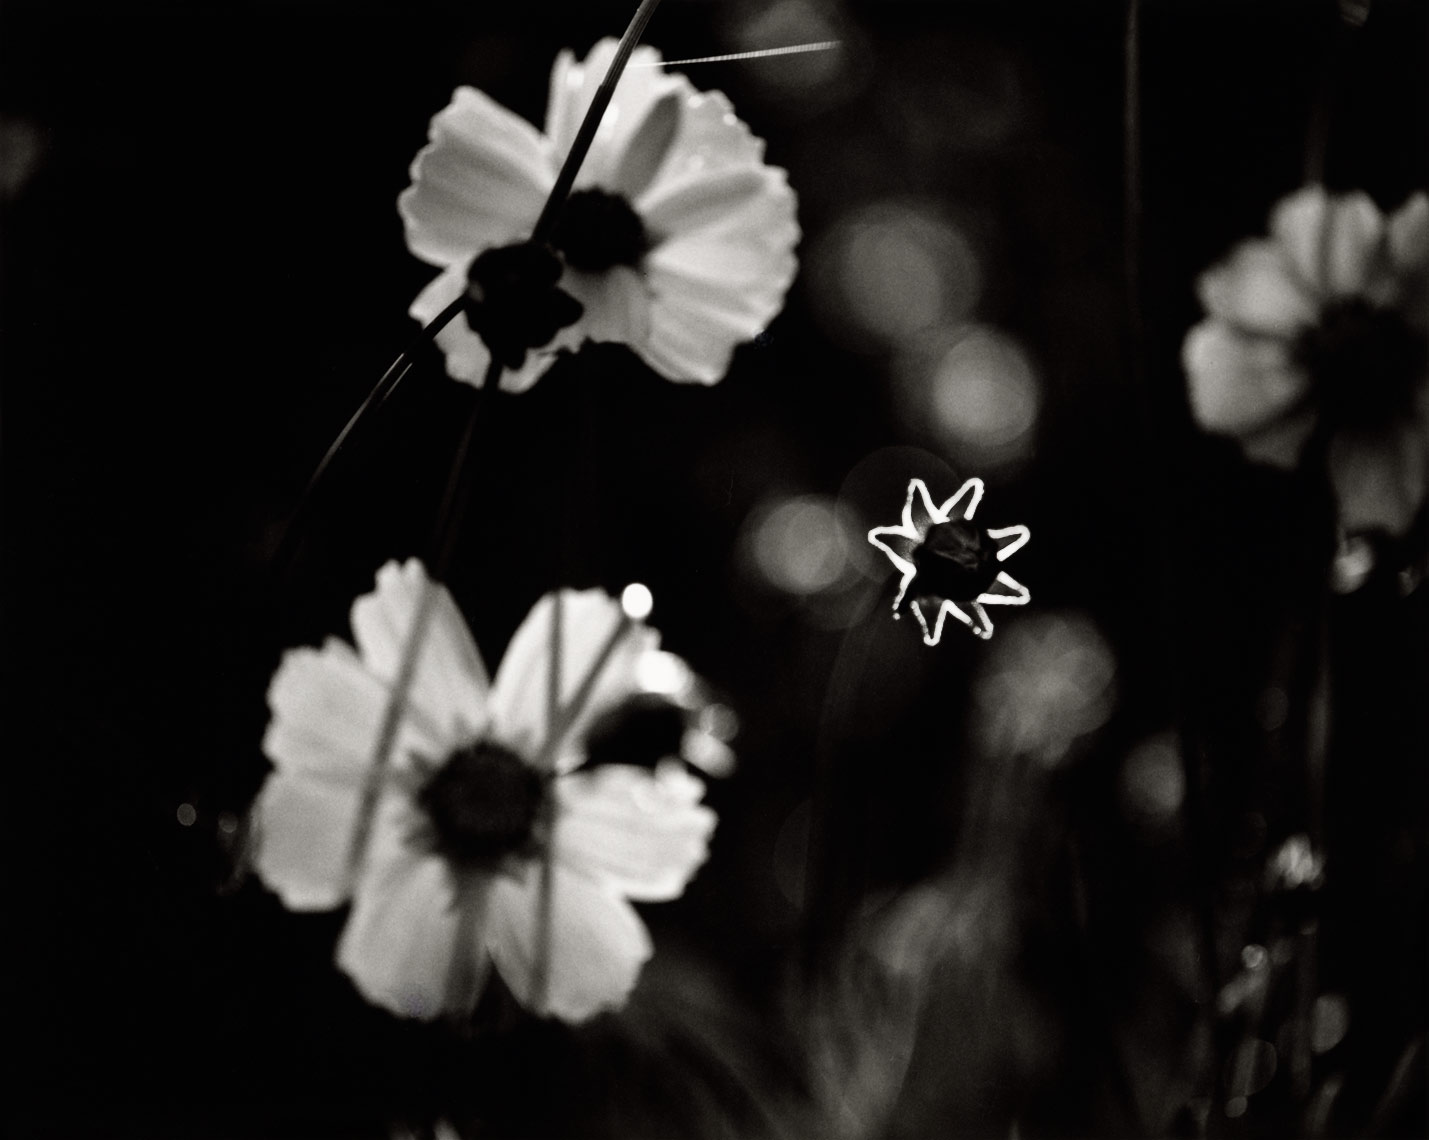 David Lebe; Coreopsis Glowing Star 1996, 2, garden black and white photograph